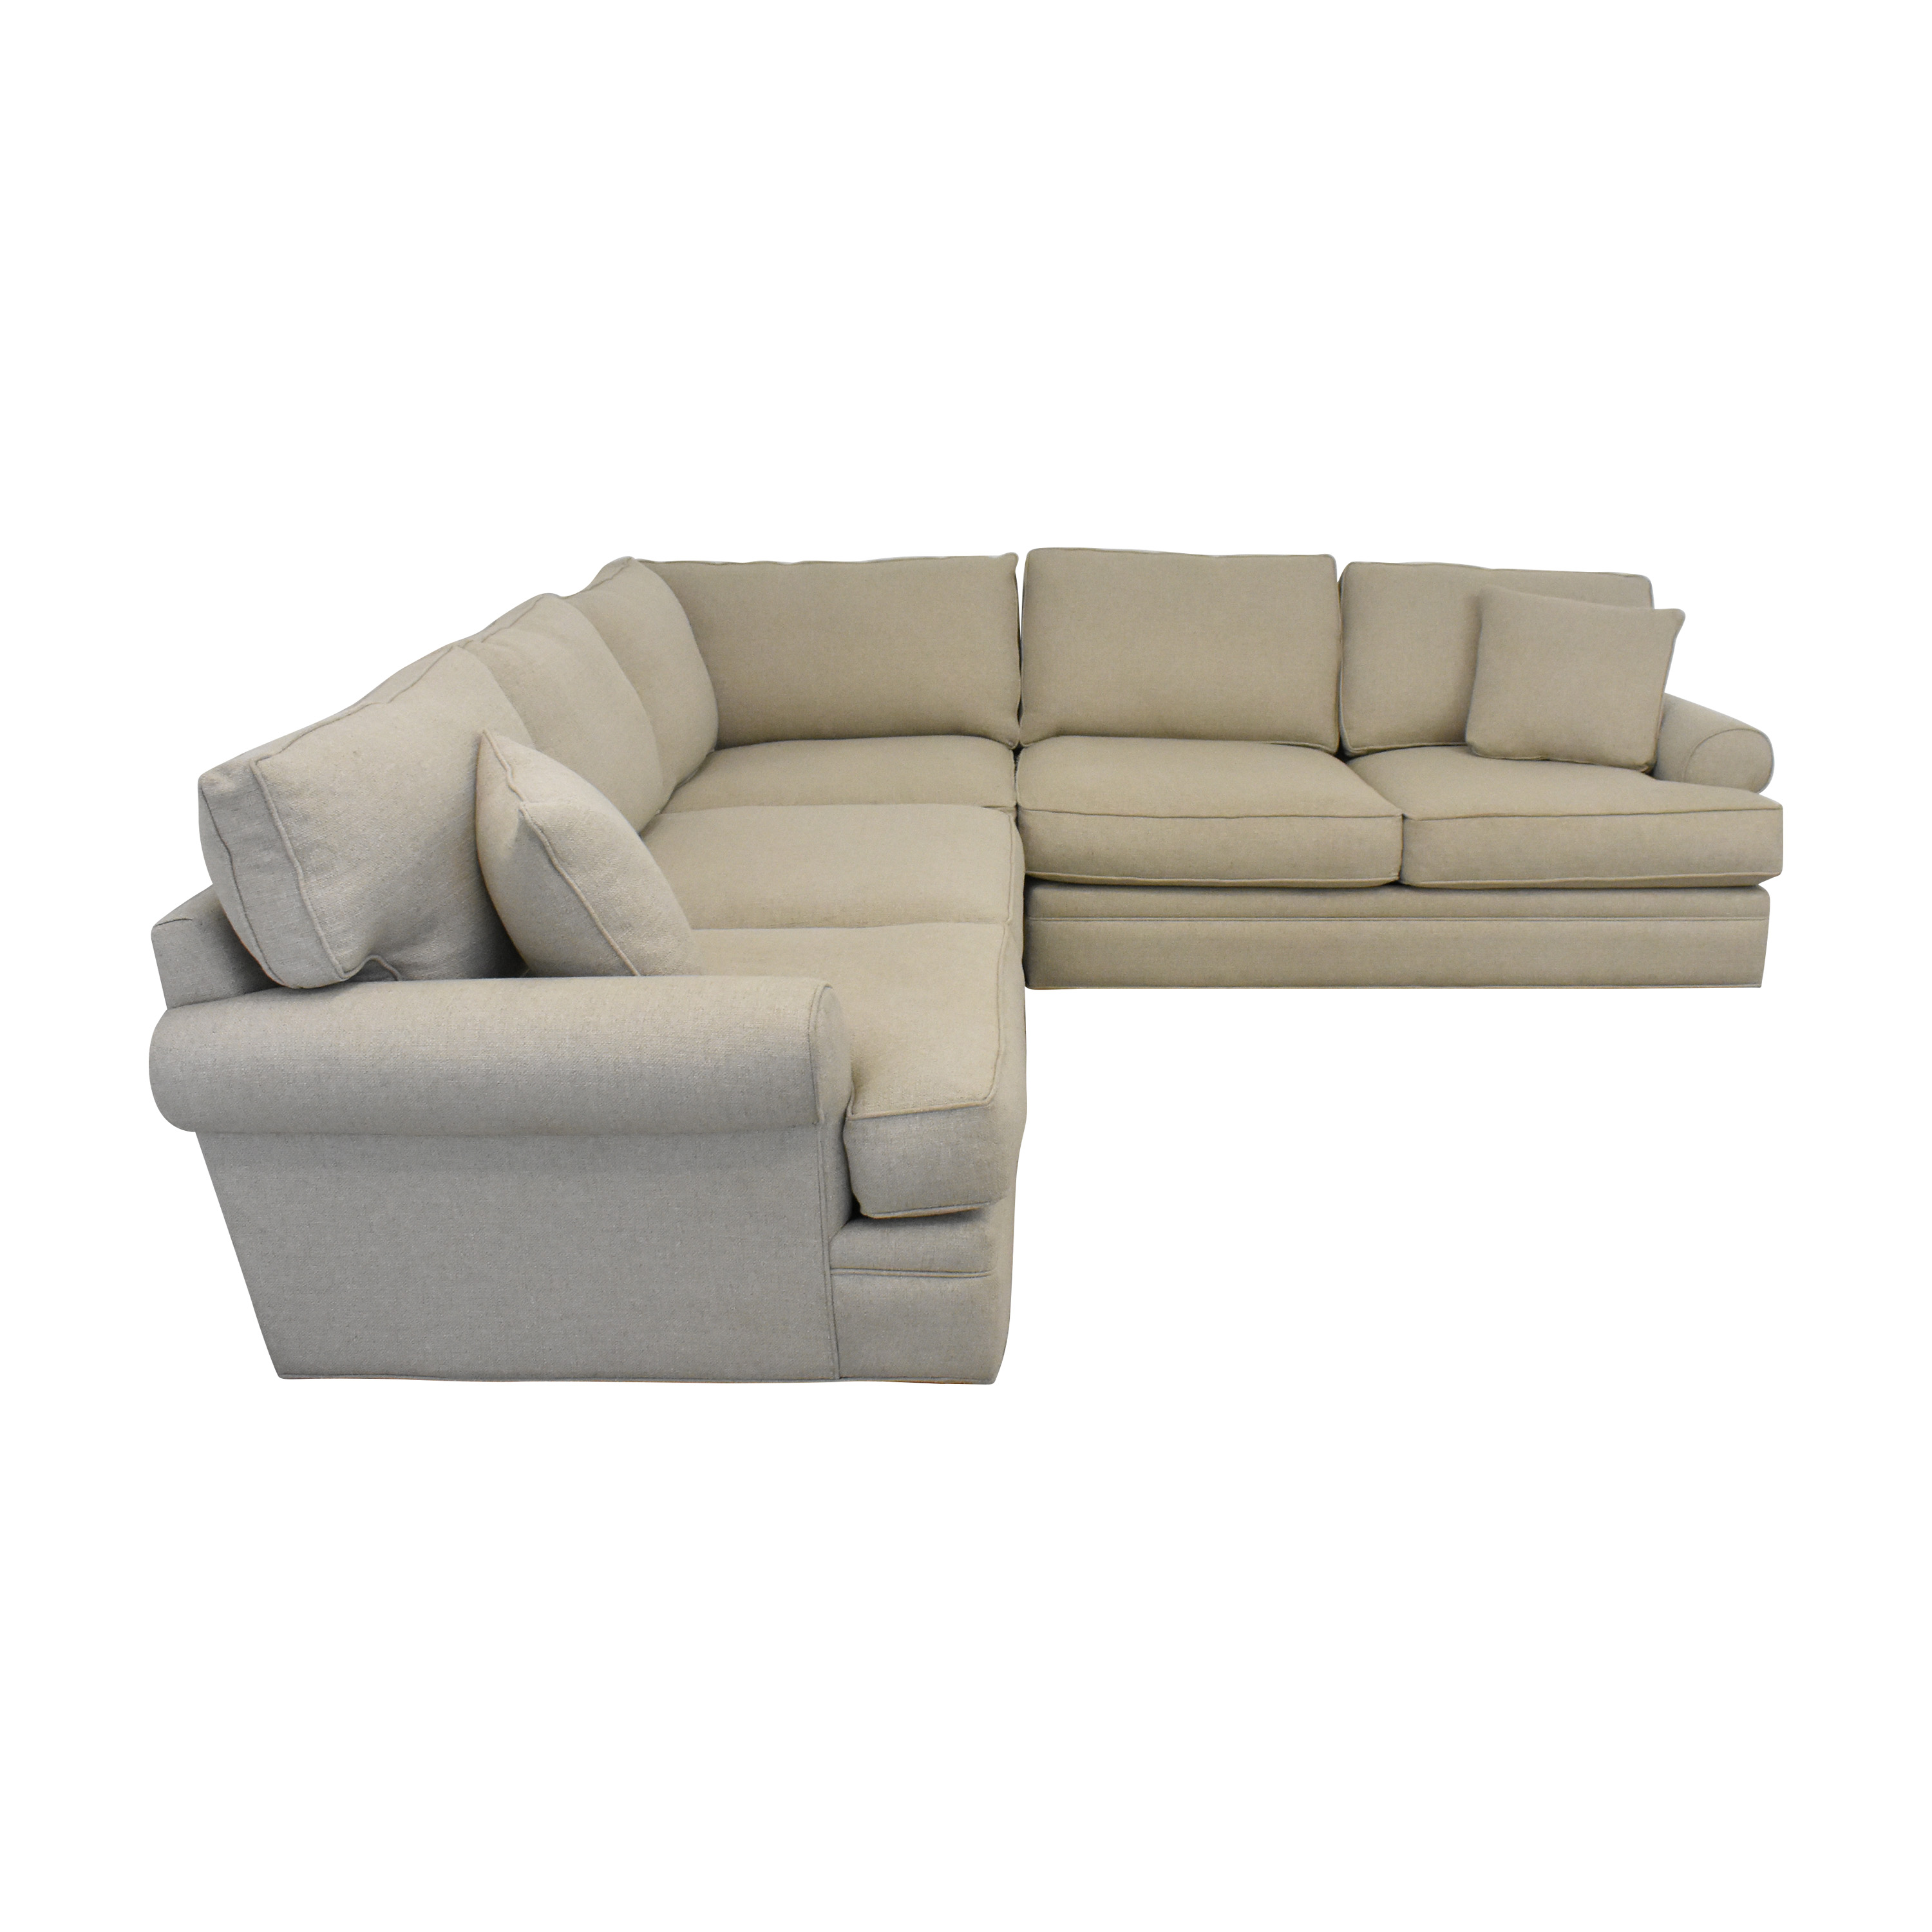 Raymour & Flanigan Raymour & Flanigan Wilkinson Sectional Sofa beige